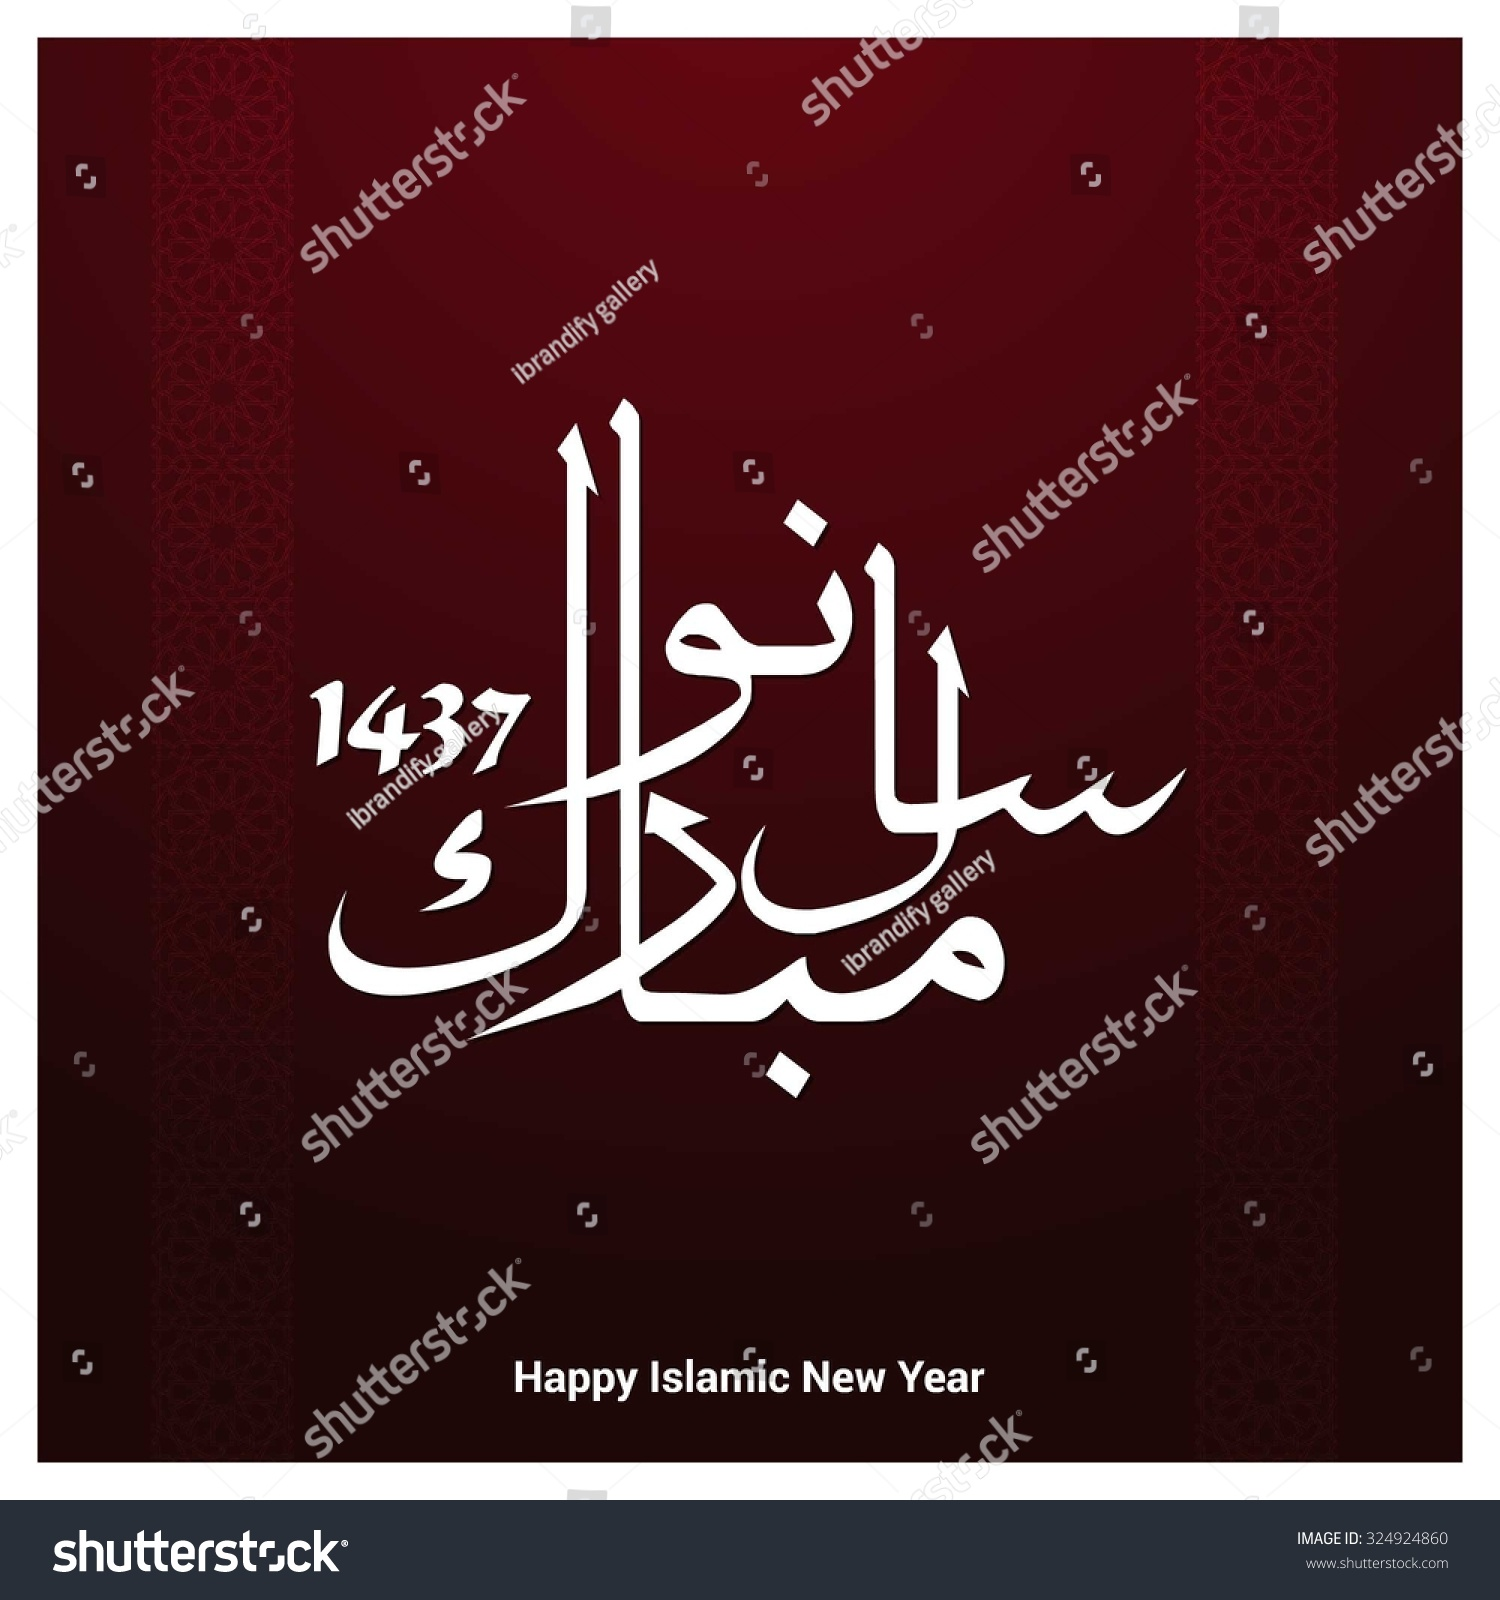 Arabic islamic calligraphy of naya saal mubarak ho urdu calligraphy arabic islamic calligraphy of naya saal mubarak ho urdu calligraphy happy new year on abstract background vector illustration ez canvas m4hsunfo